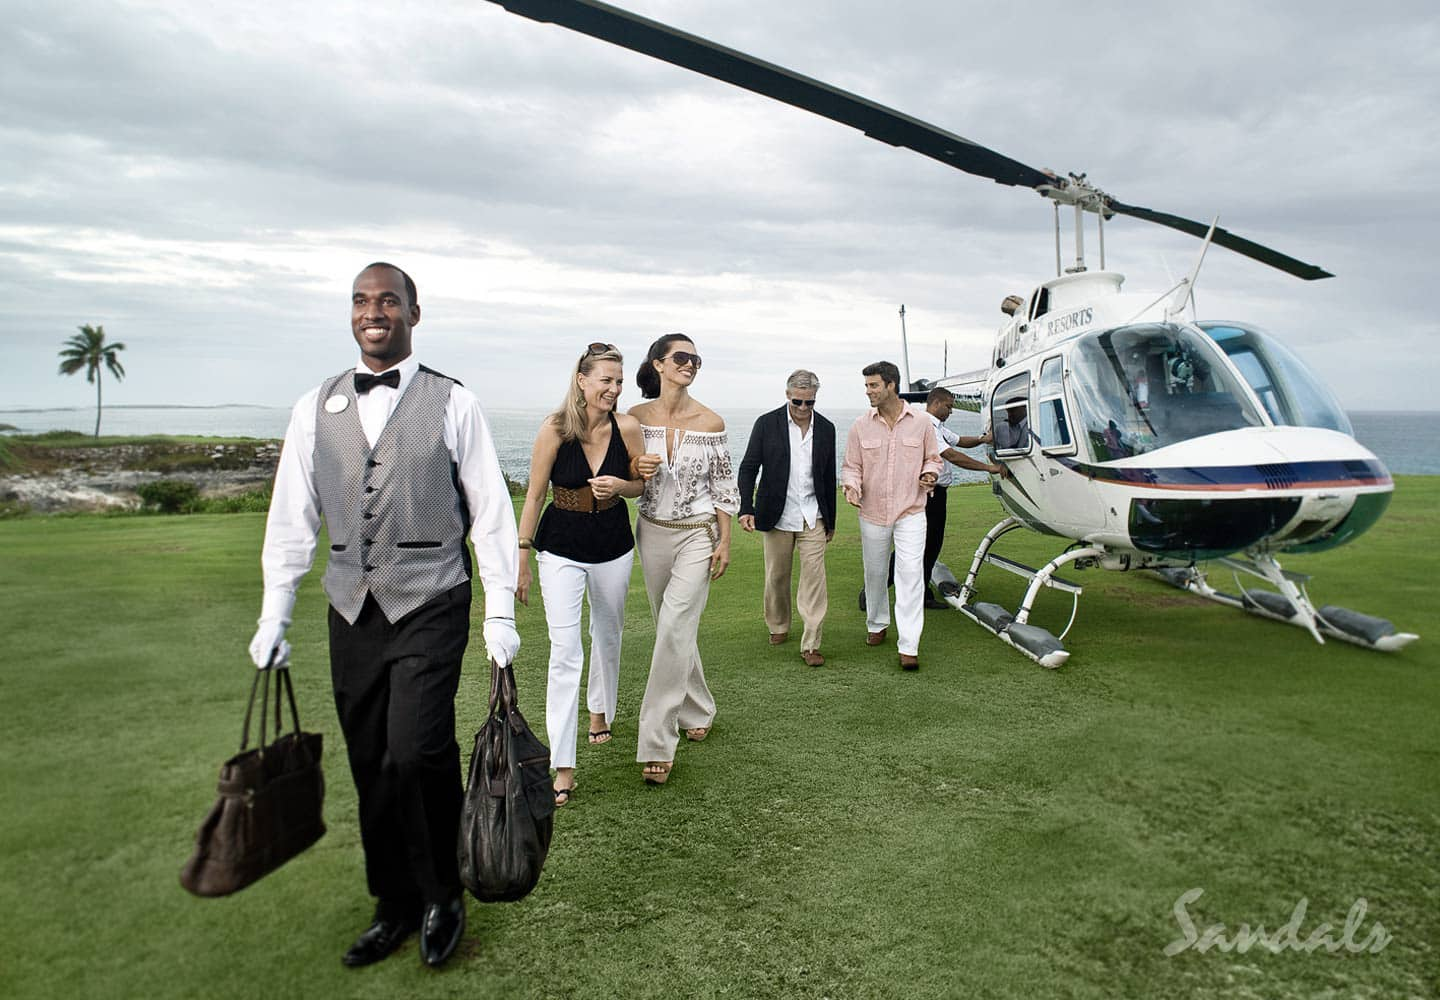 helicopter landing guests picked up from butler at the luxury Sandals Emerald Bay golf, spa, and tennis resort at the Great Exuma Bahamas, this adult only resort can be booked with Southern Travel Agency Augusta, GA